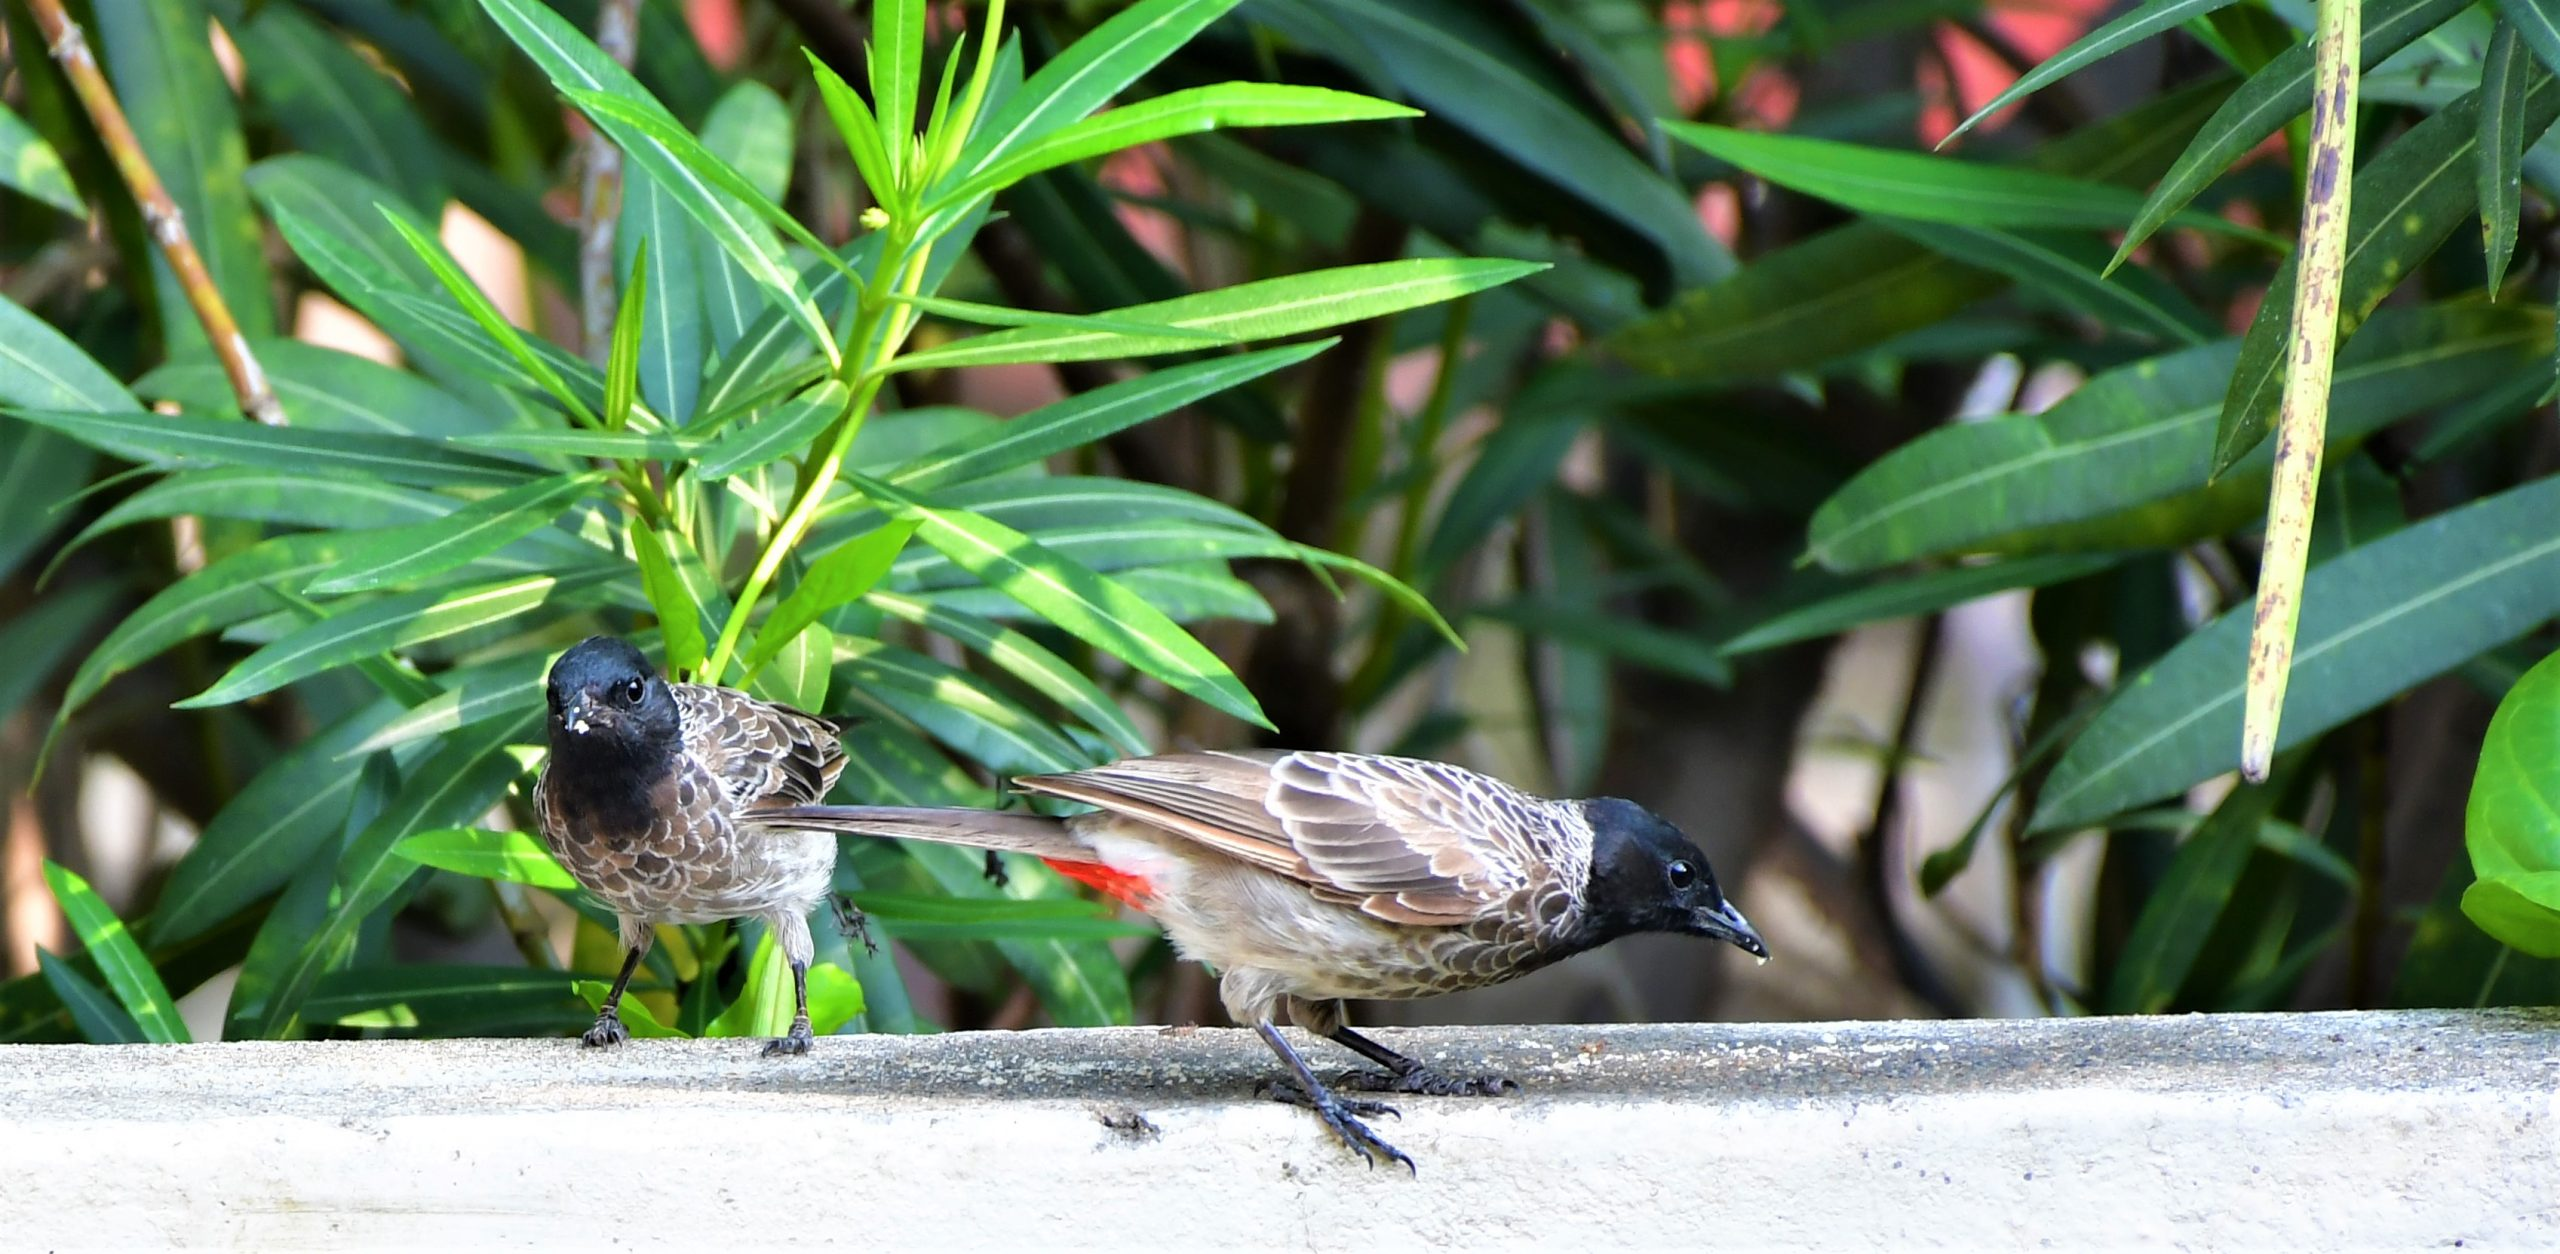 Two bulbul birds eating